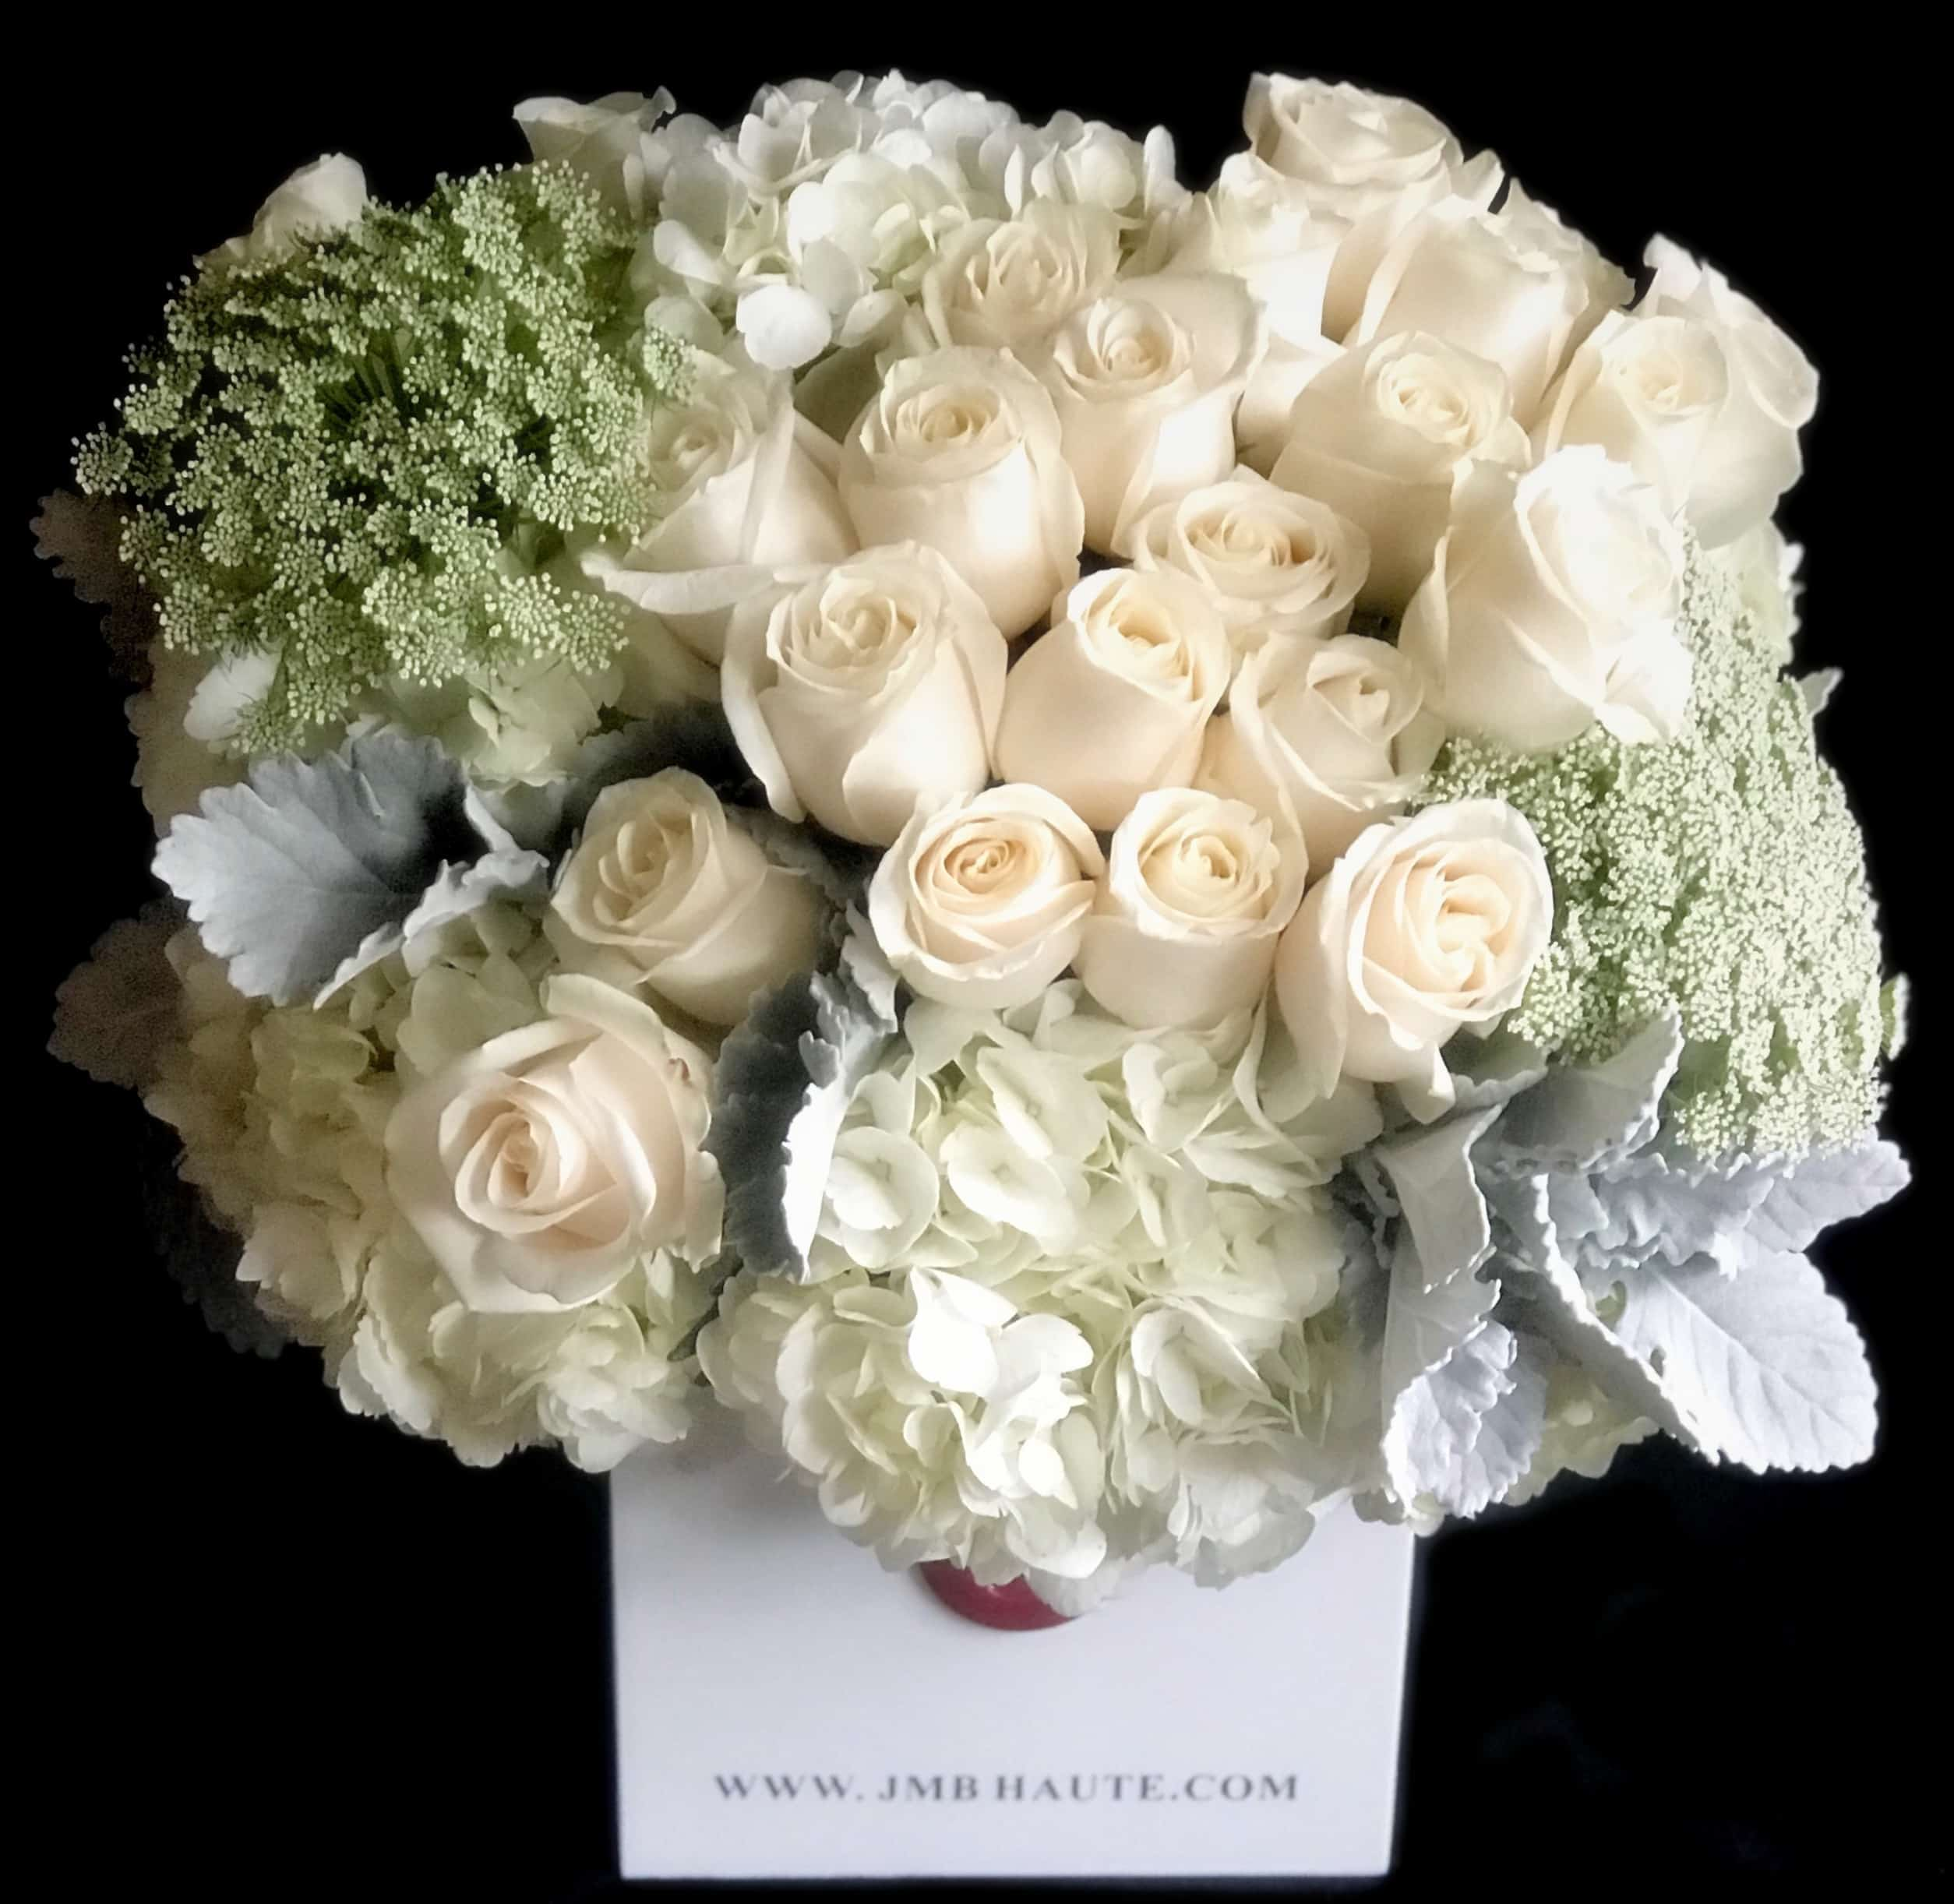 White flowers including, white roses, white hydrangea and seasonal white foliage in our custom acrylic box